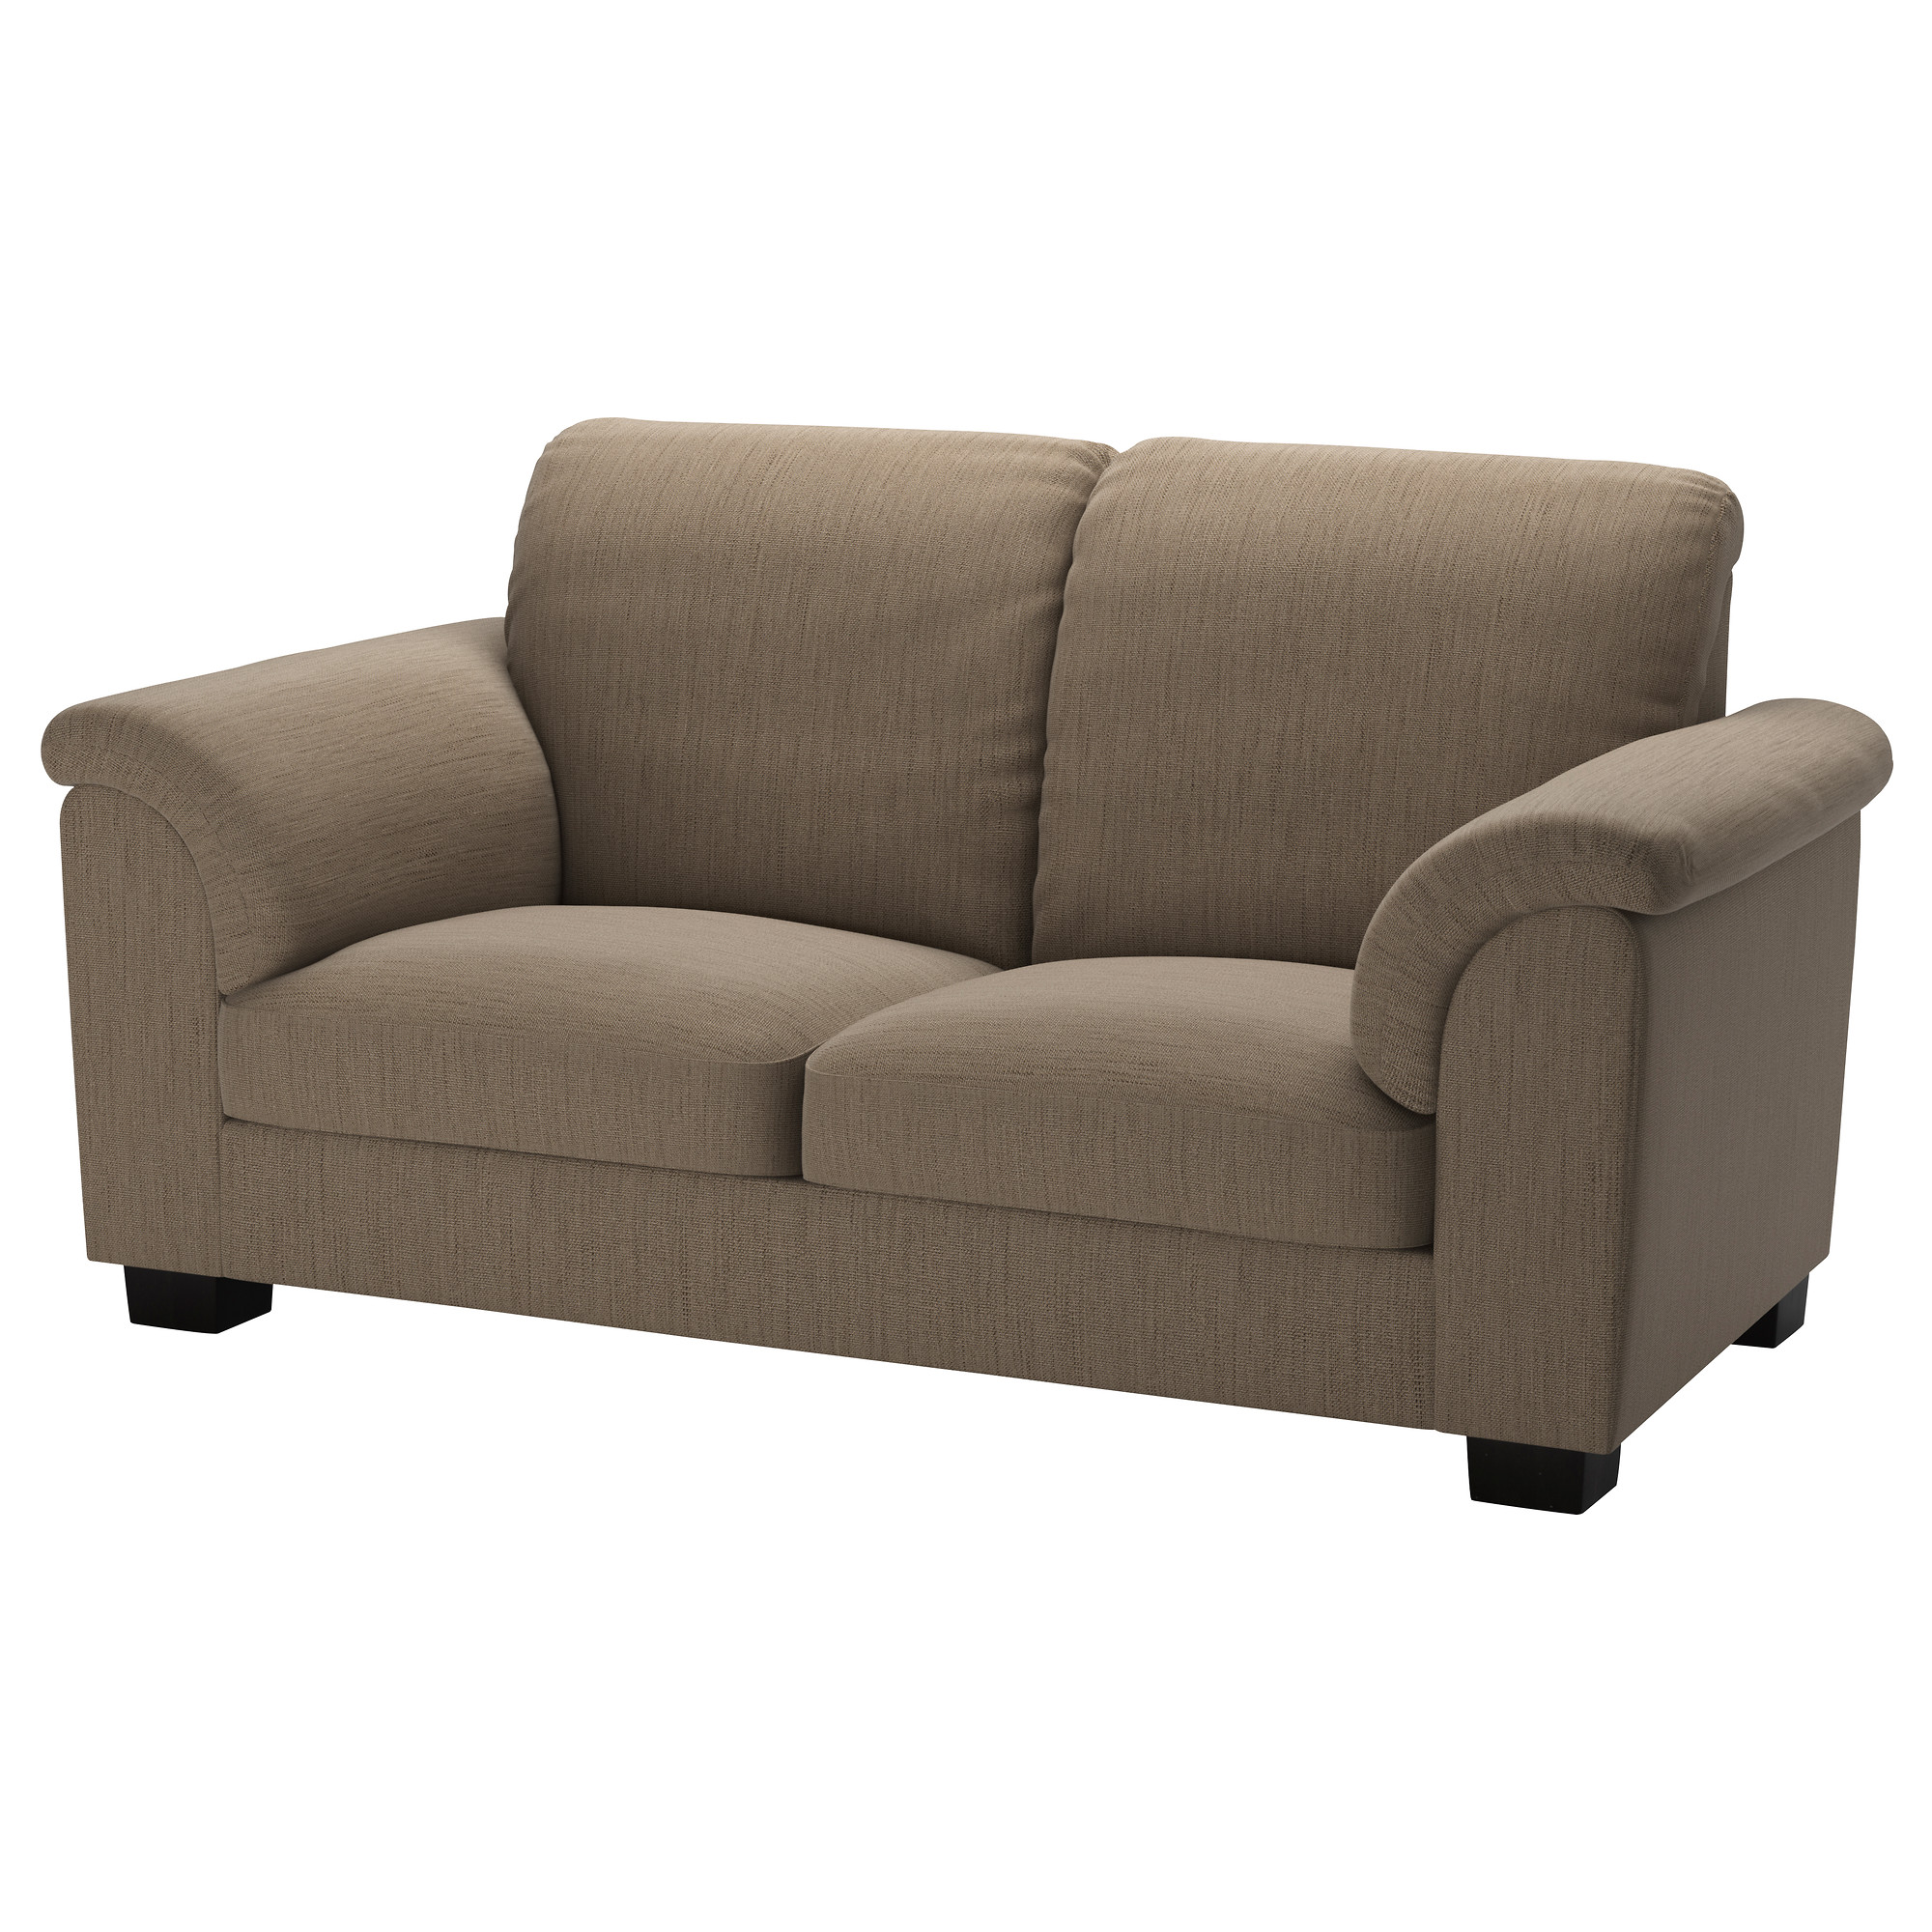 ... Sofas IKEA. Home Furnishings Kitchens Appliances Sofas Beds Ikea. View